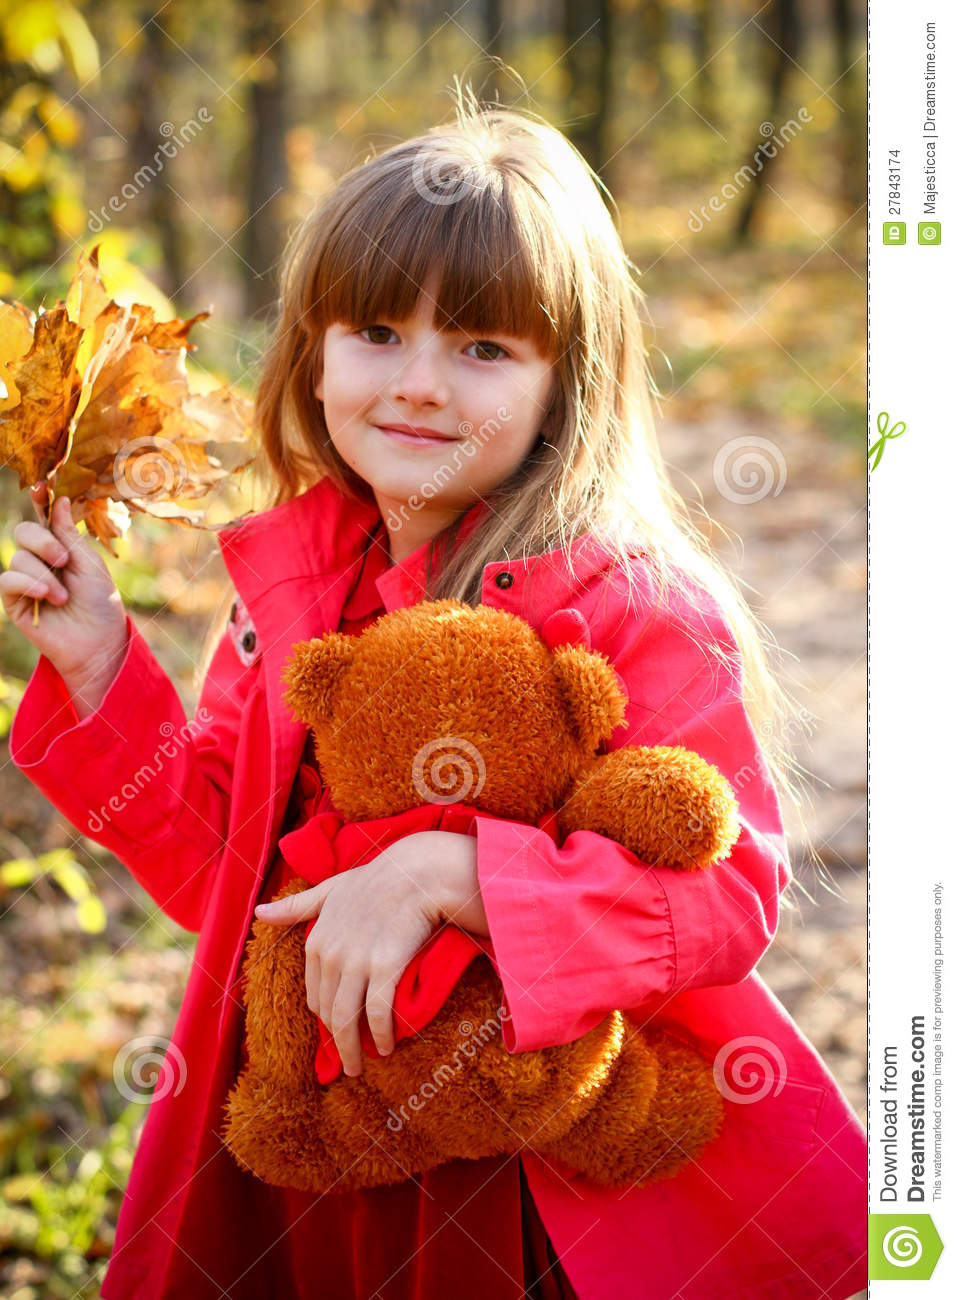 Smiling Girl With Maple Leaves And Teddy Bear Stock Images